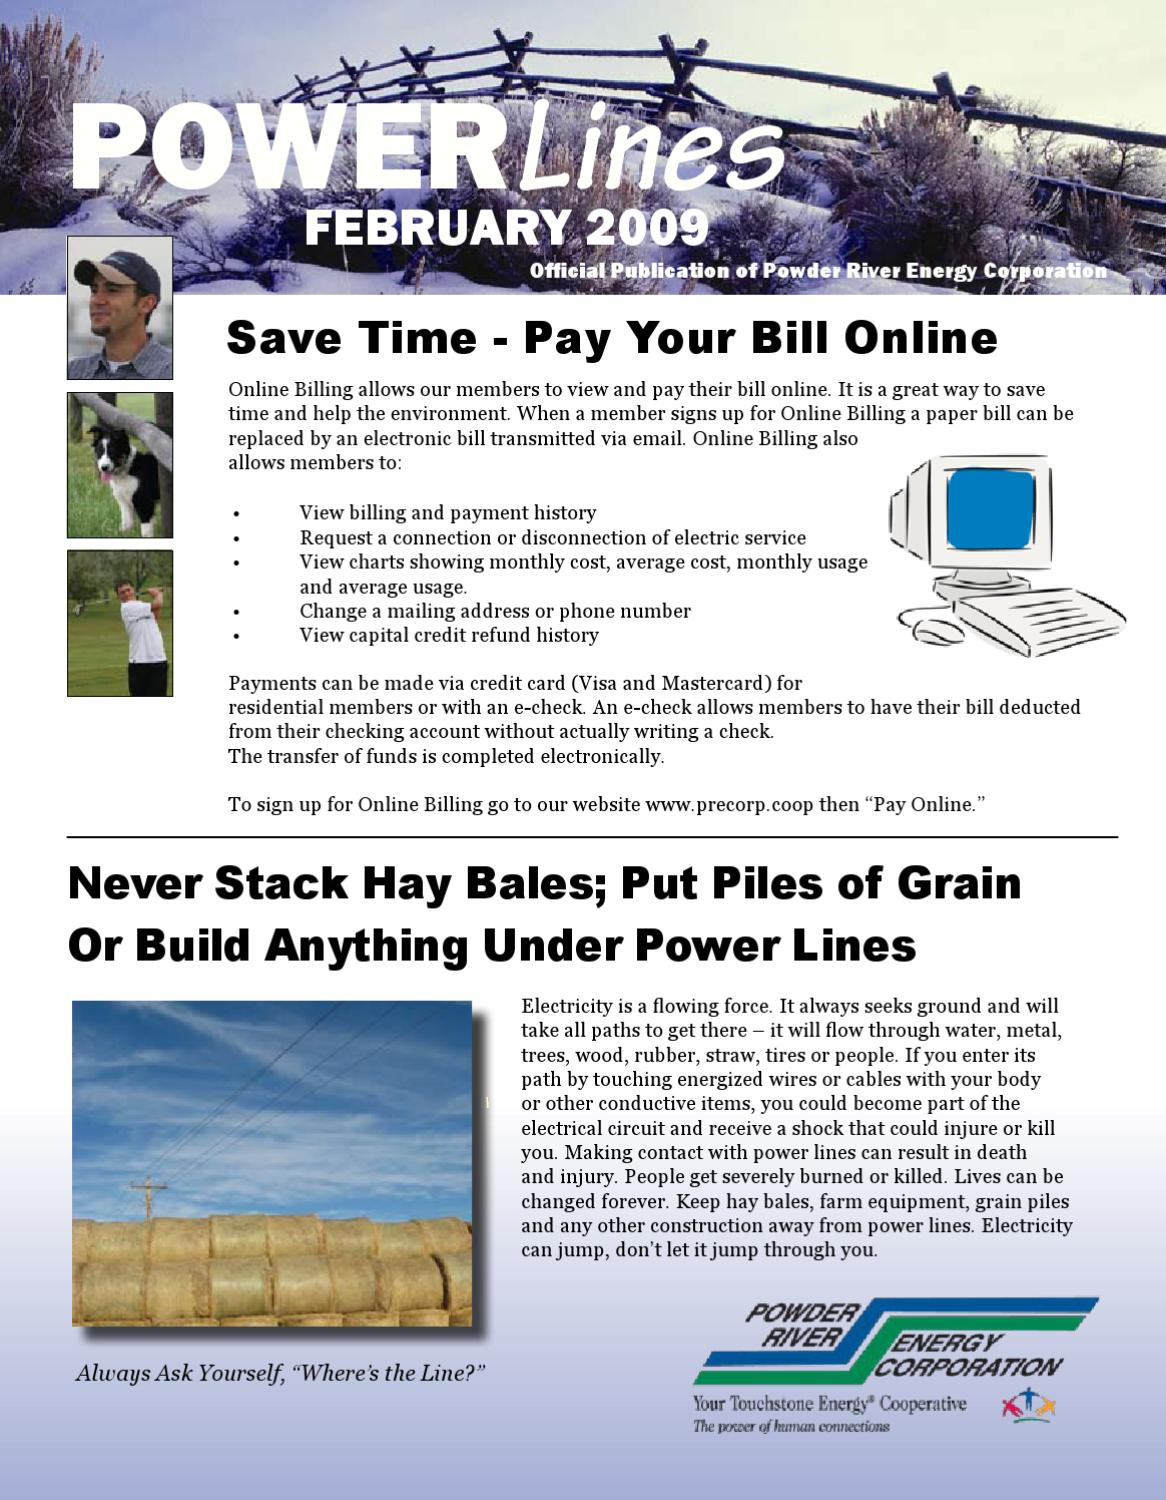 power-lines-2009-02-01 by Powder River Energy Corporation - issuu